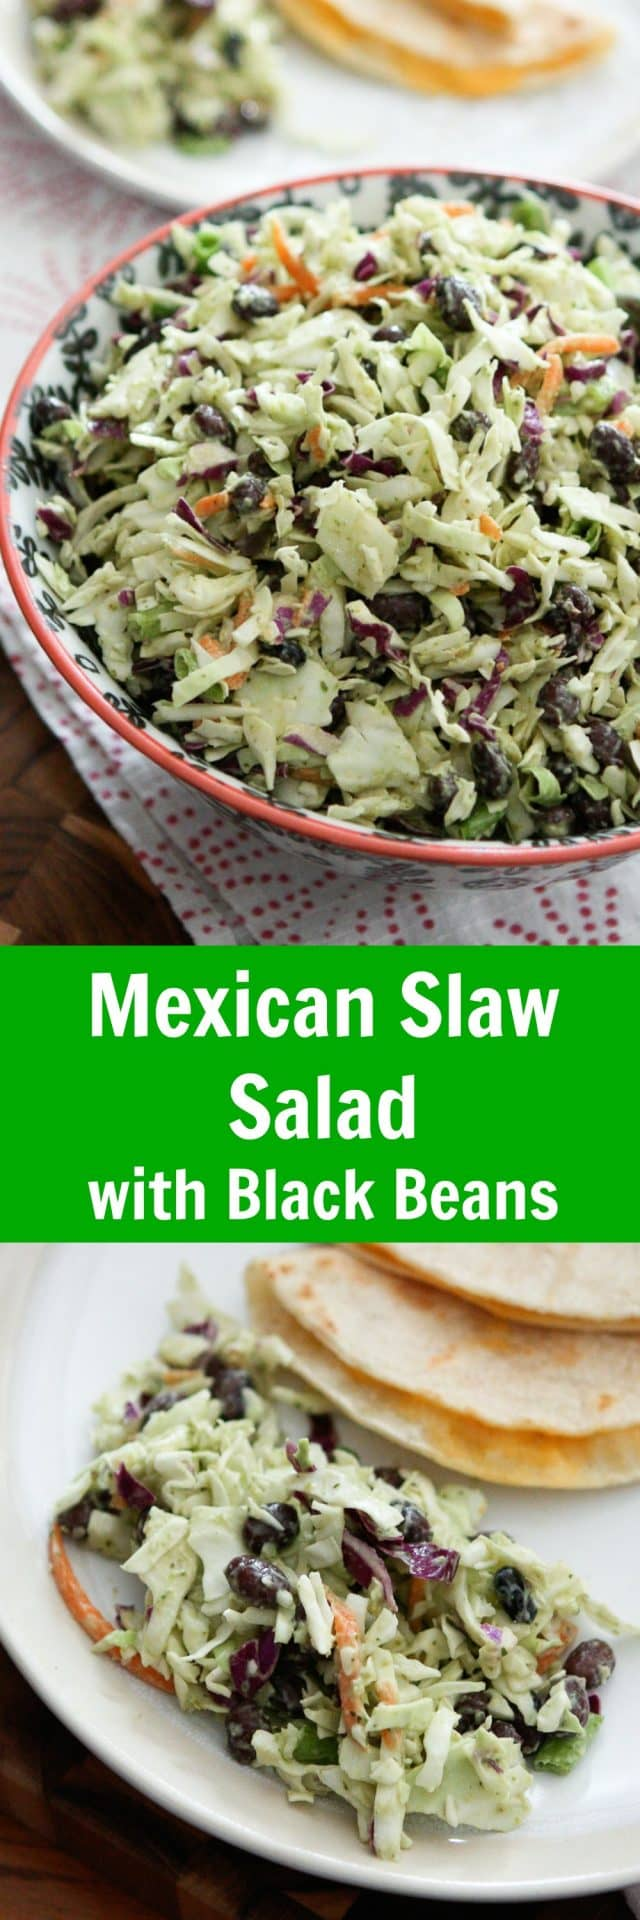 This Mexican Slaw Salad with Black Beans is the perfect addition to any dinner, potluck or fiesta!! It's tangy Avocado Lime Dressing is OUT OF THIS WORLD! We love it served with simple cheese quesadillas or enchiladas. Recipe via aggieskitchen.com